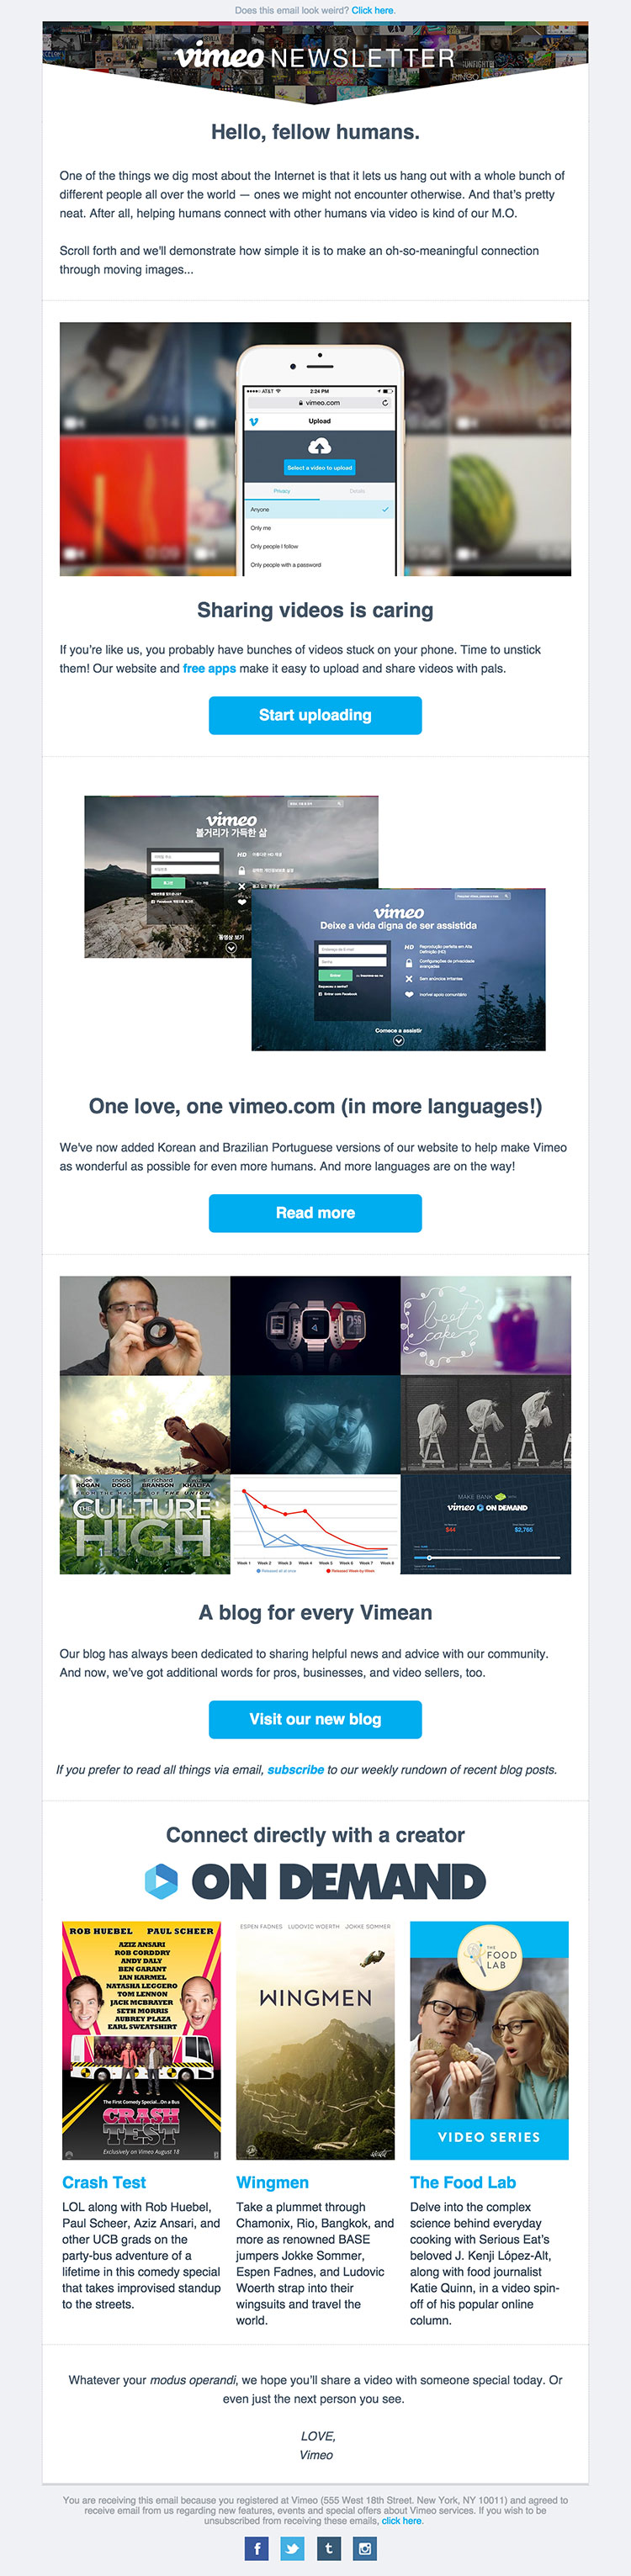 html email blast template - vimeo 39 s monthly newsletter html email gallery